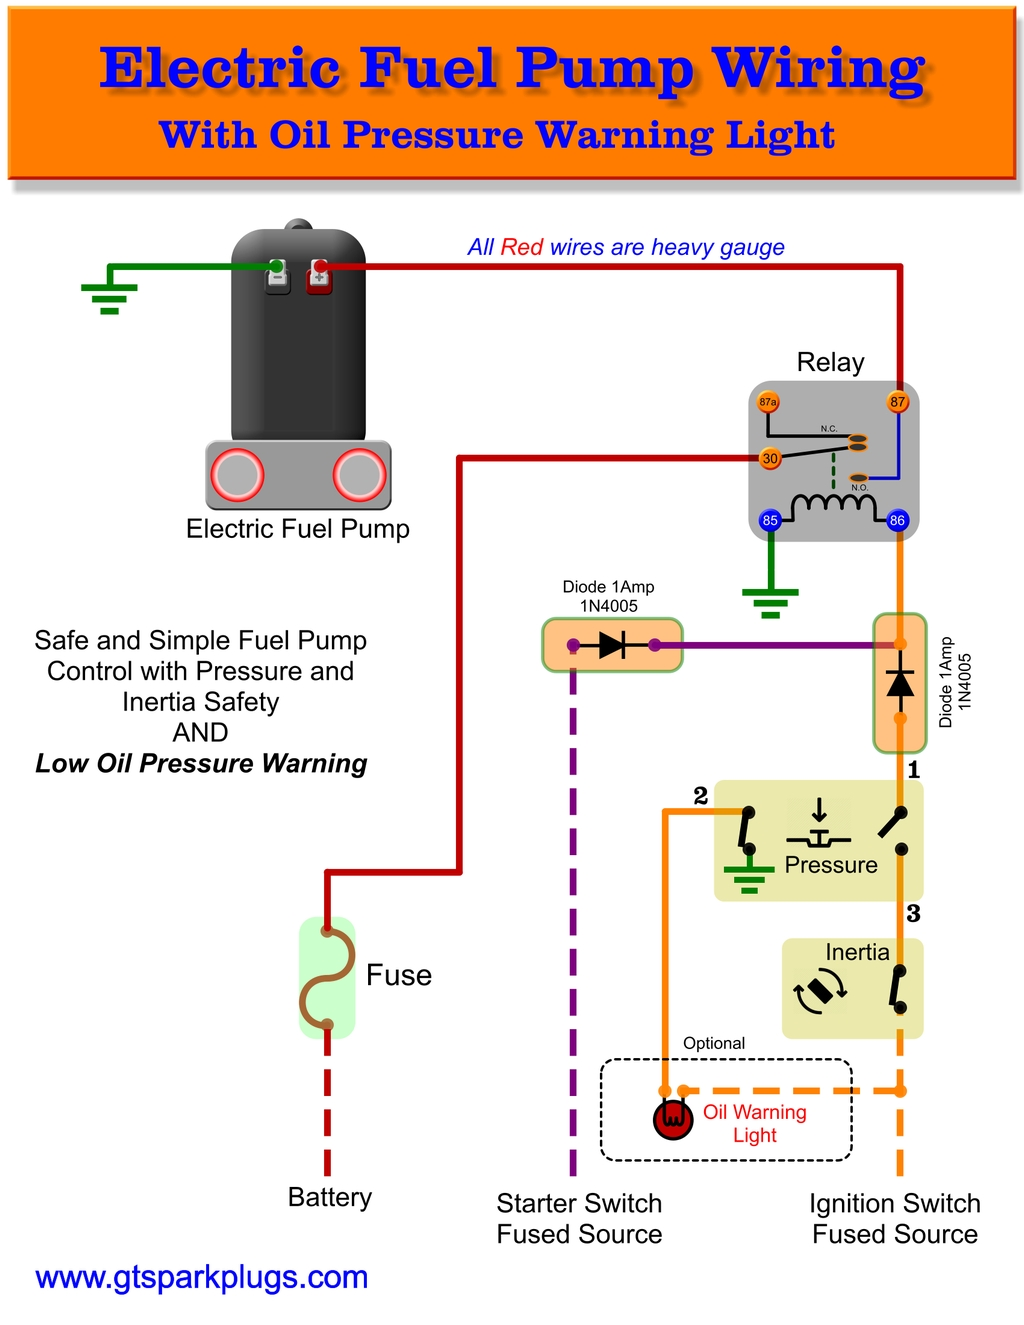 electric fuel pump wiring diagram gtsparkplugs rh gtsparkplugs com